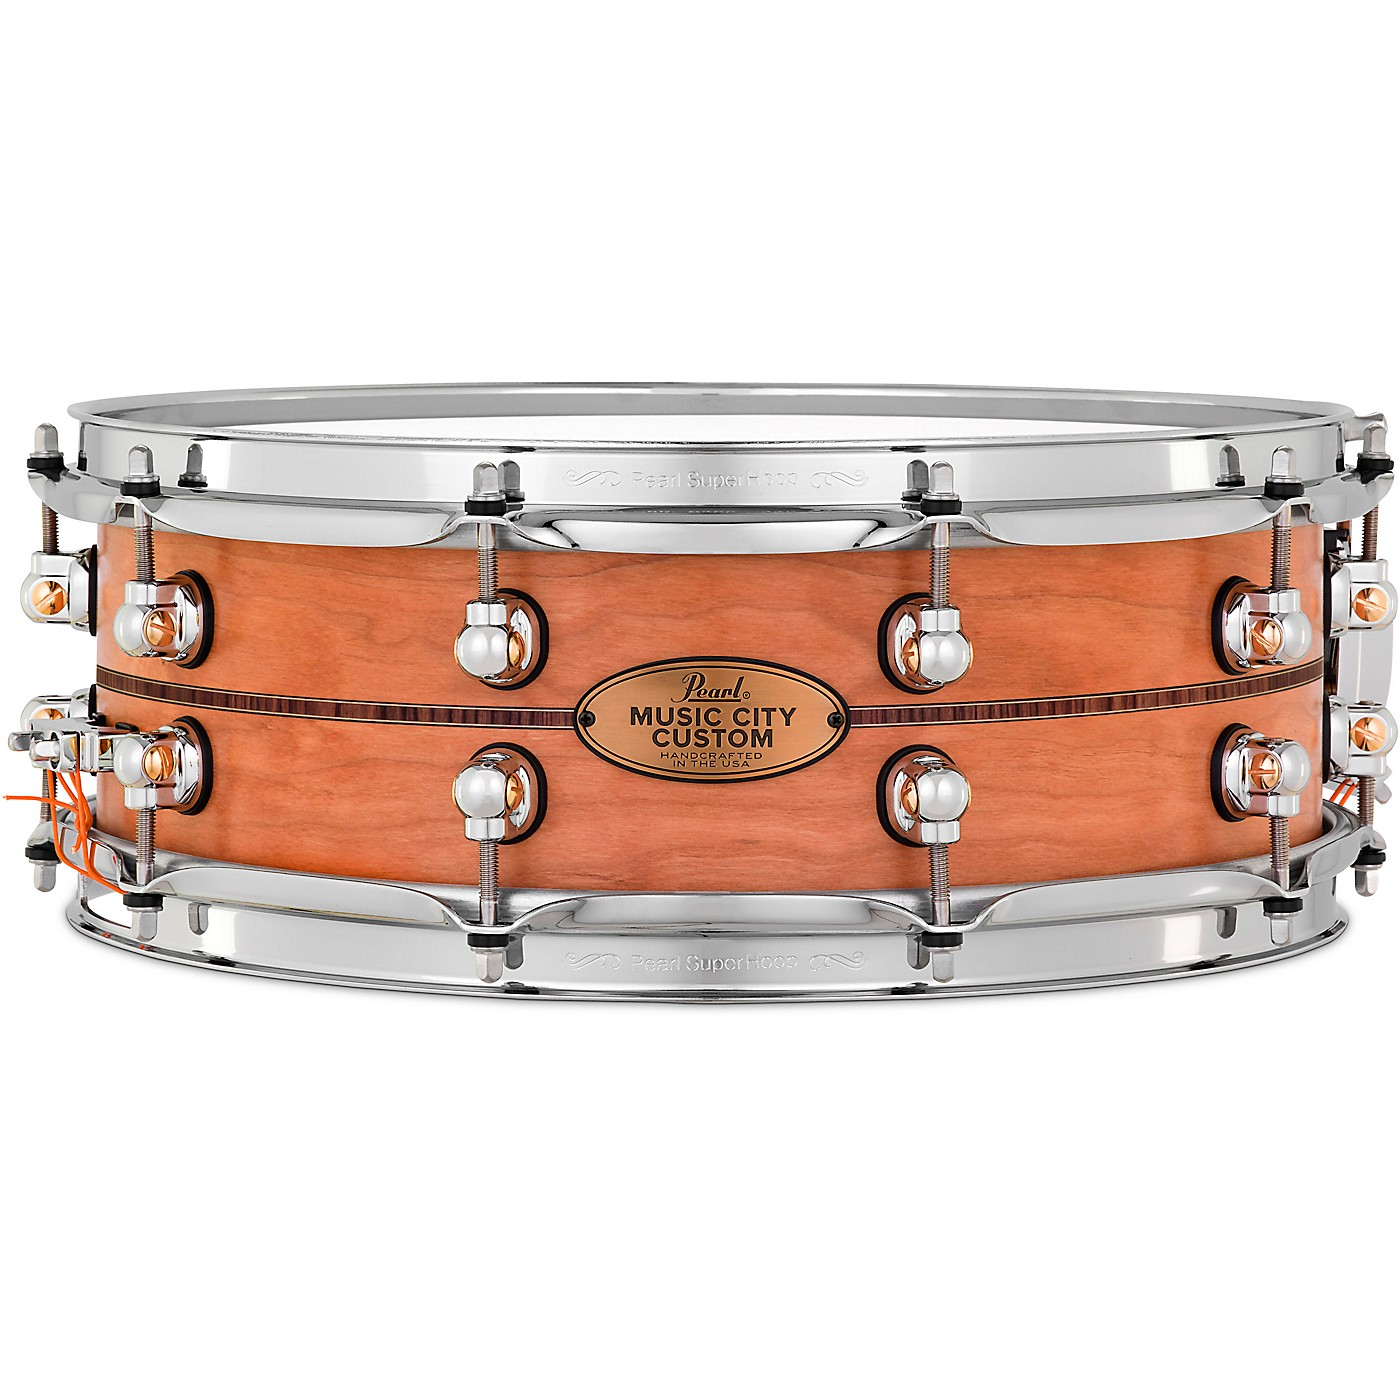 Pearl Music City Custom Solid Shell Snare Cherry with Kingwood Center Inlay thumbnail